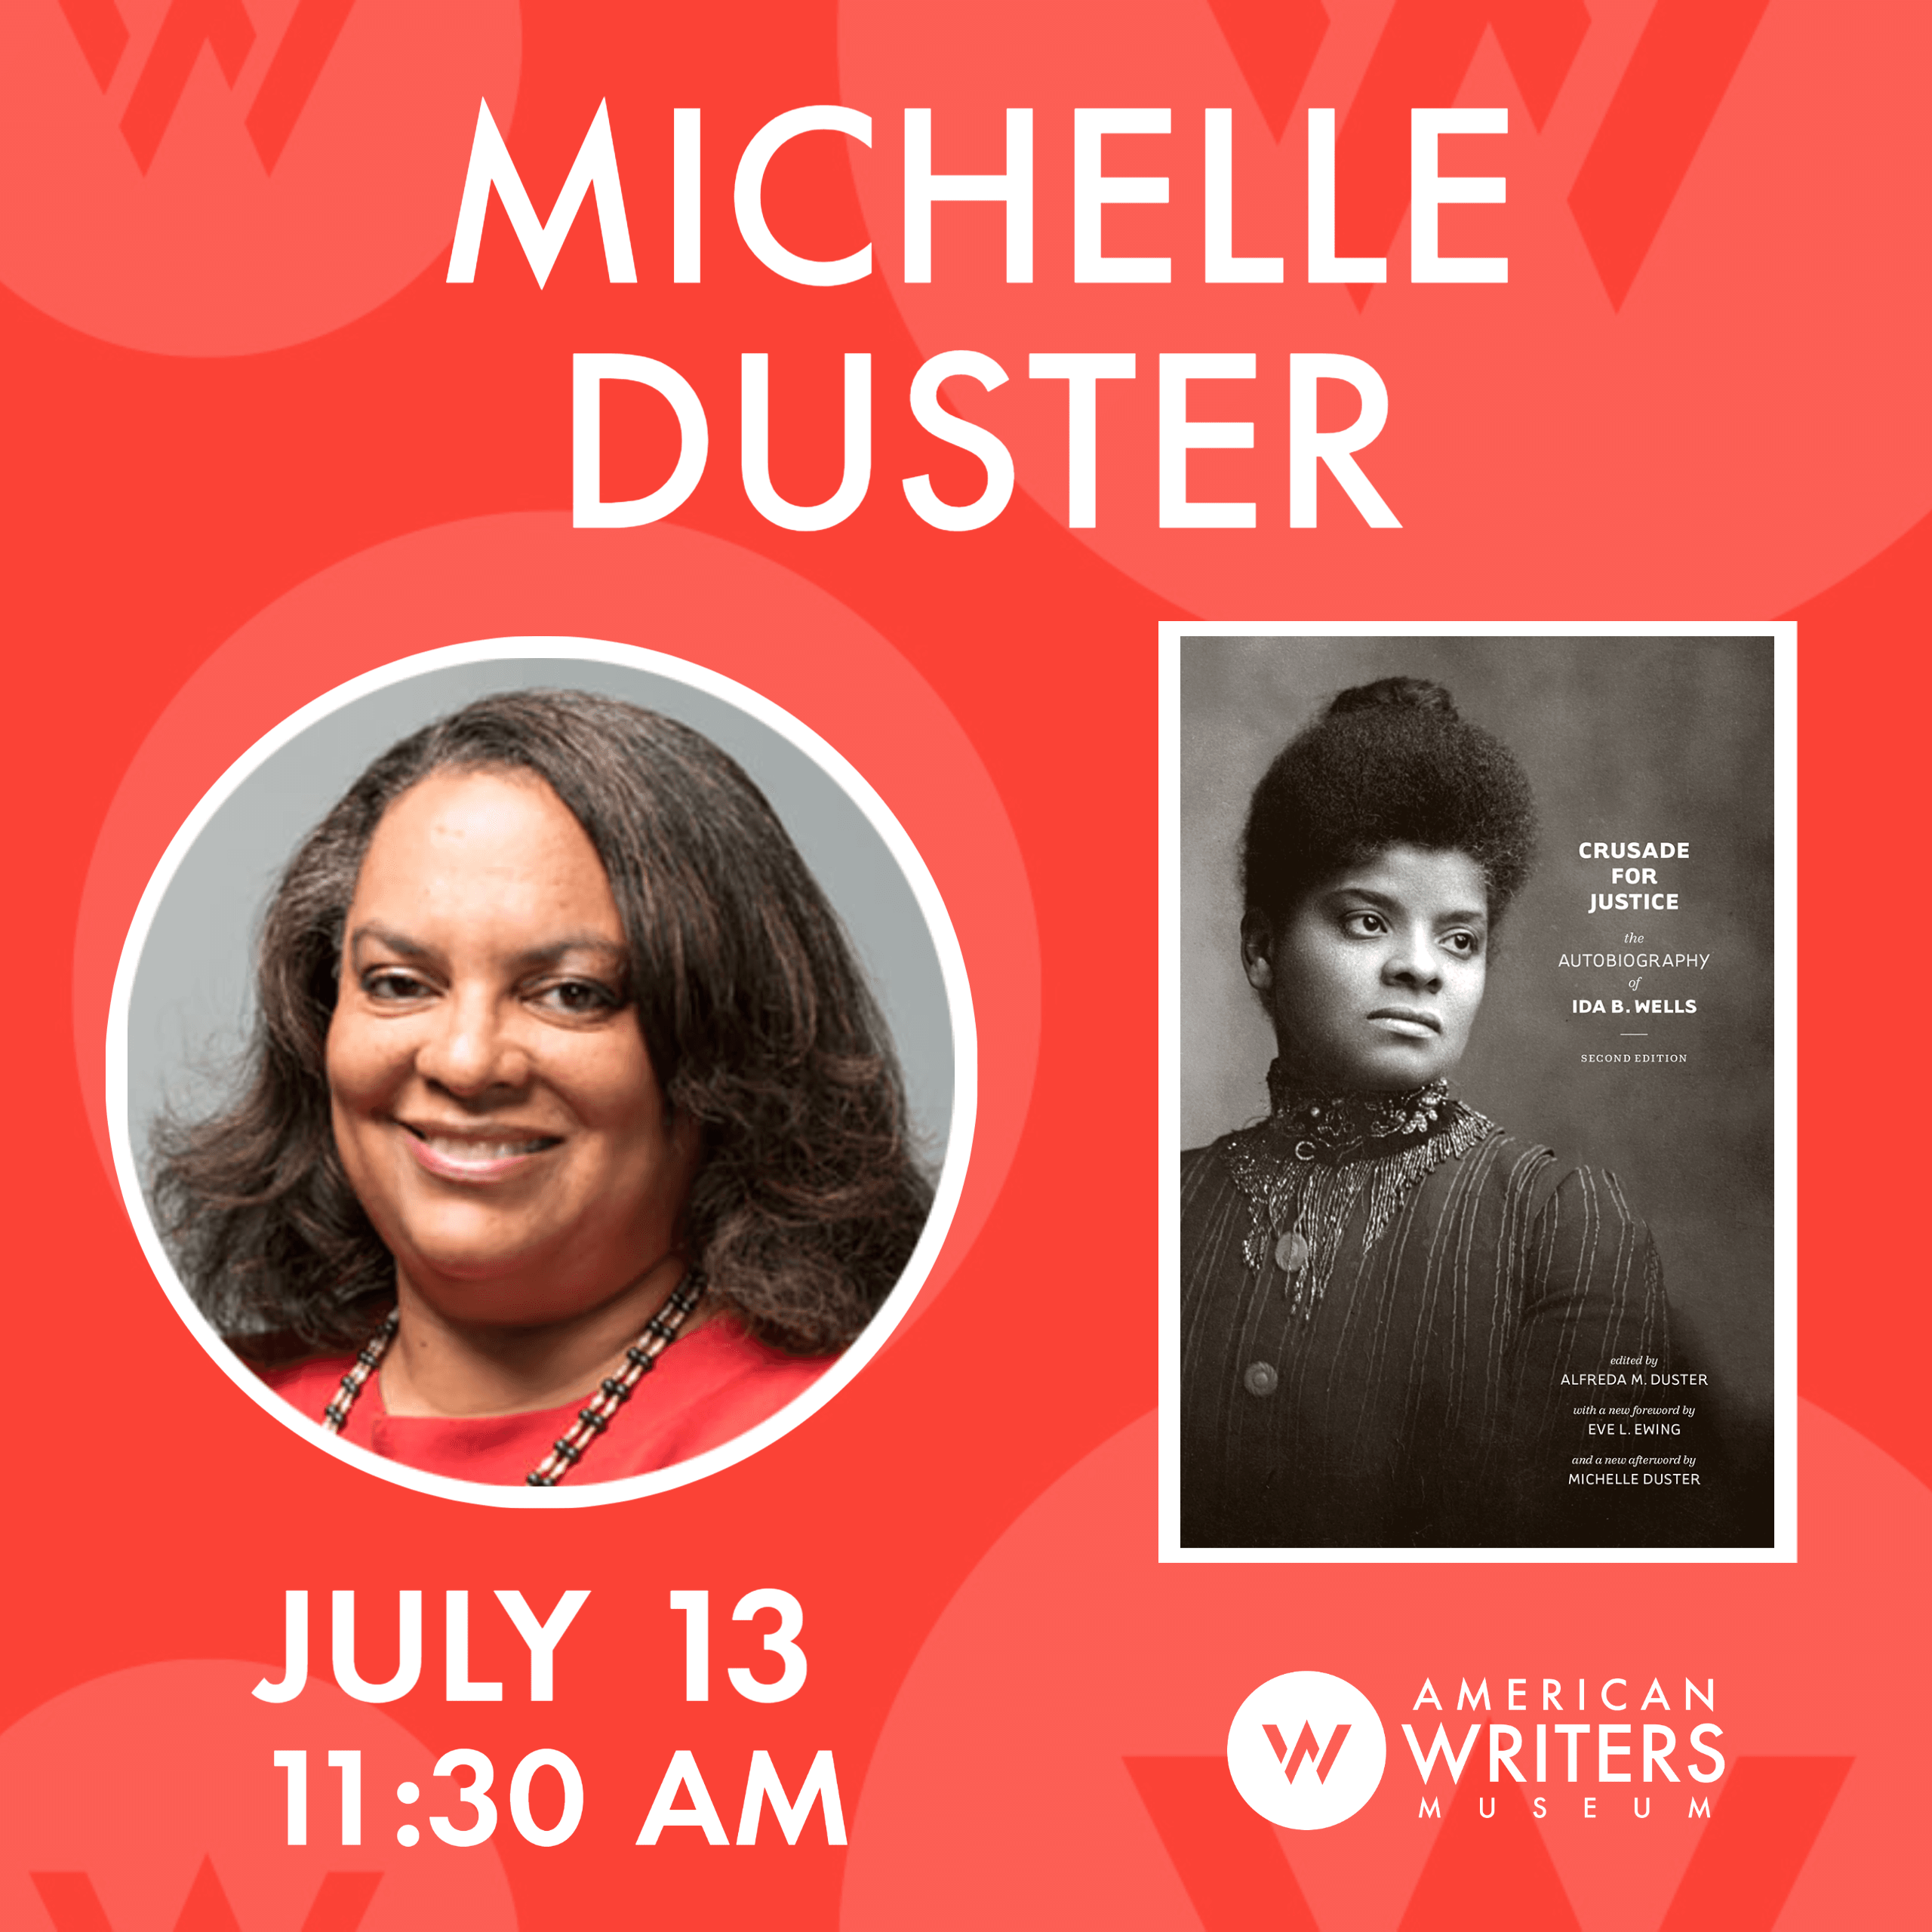 """Michelle Duster discusses """"Crusade for Justice: The Autobiography of Ida B. Wells"""""""